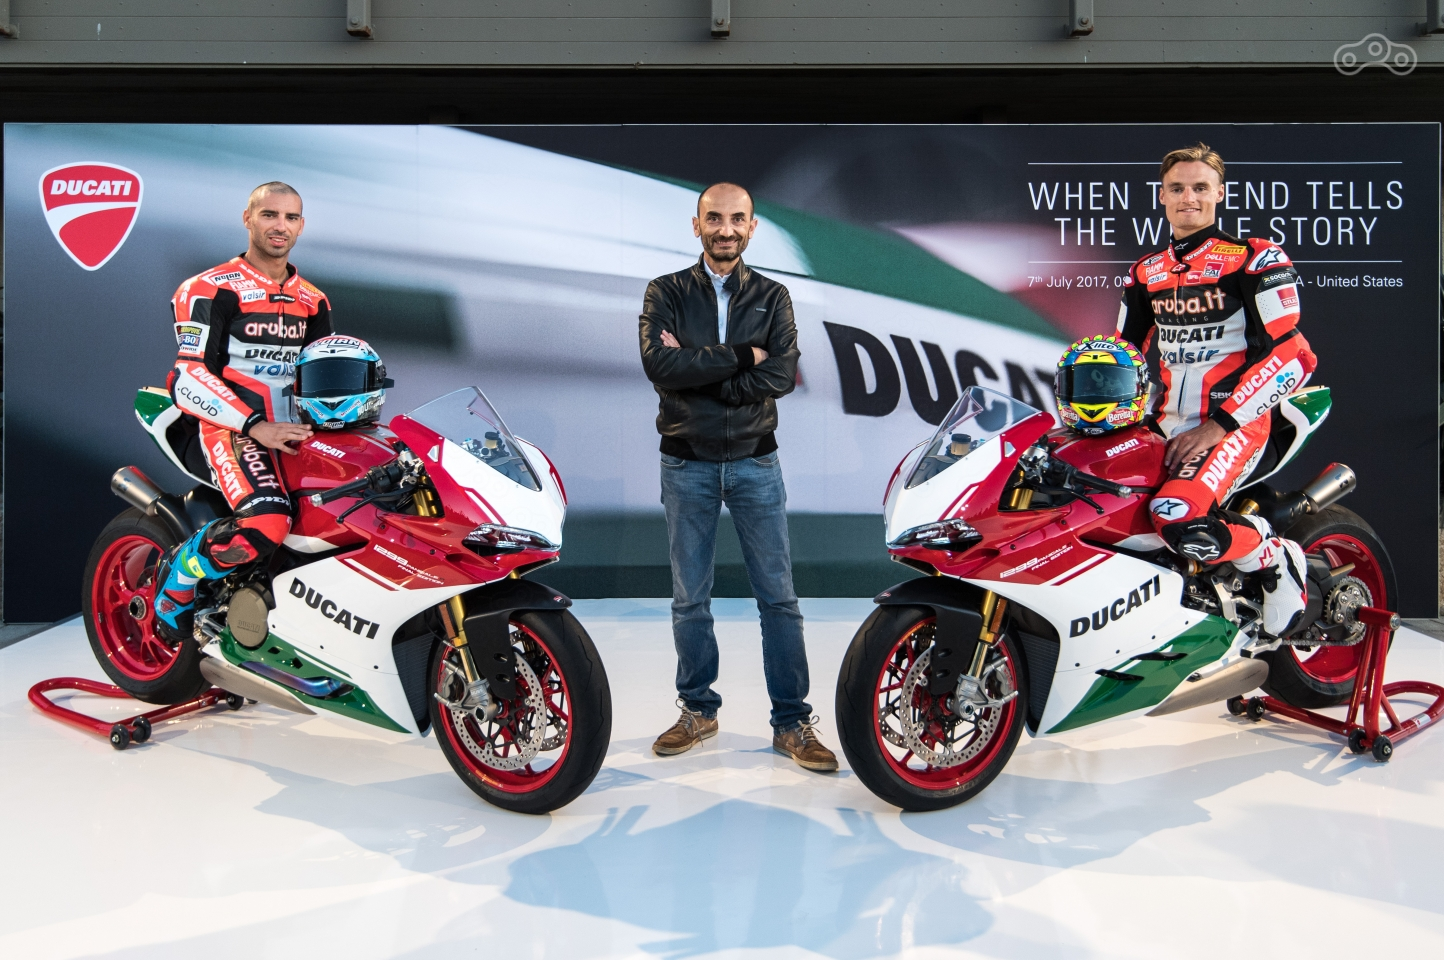 Чаз Дэвис, Клаудио Доминикали и Марко Меландри на премьере Ducati 1299 Panigale R Final Edition